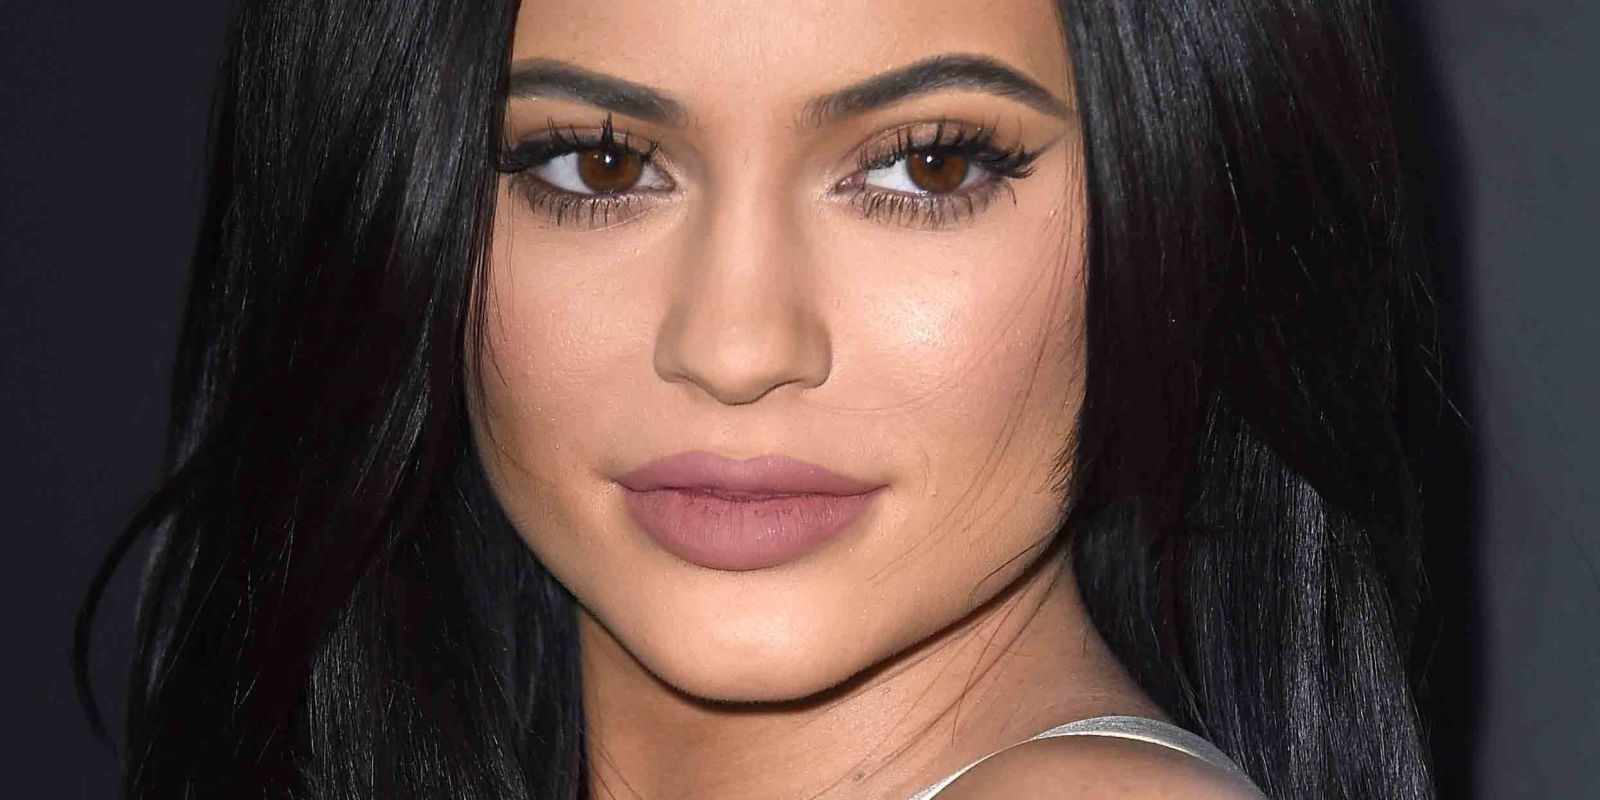 Kylie Jenner Wallpapers Celebrity Hq Kylie Jenner Pictures